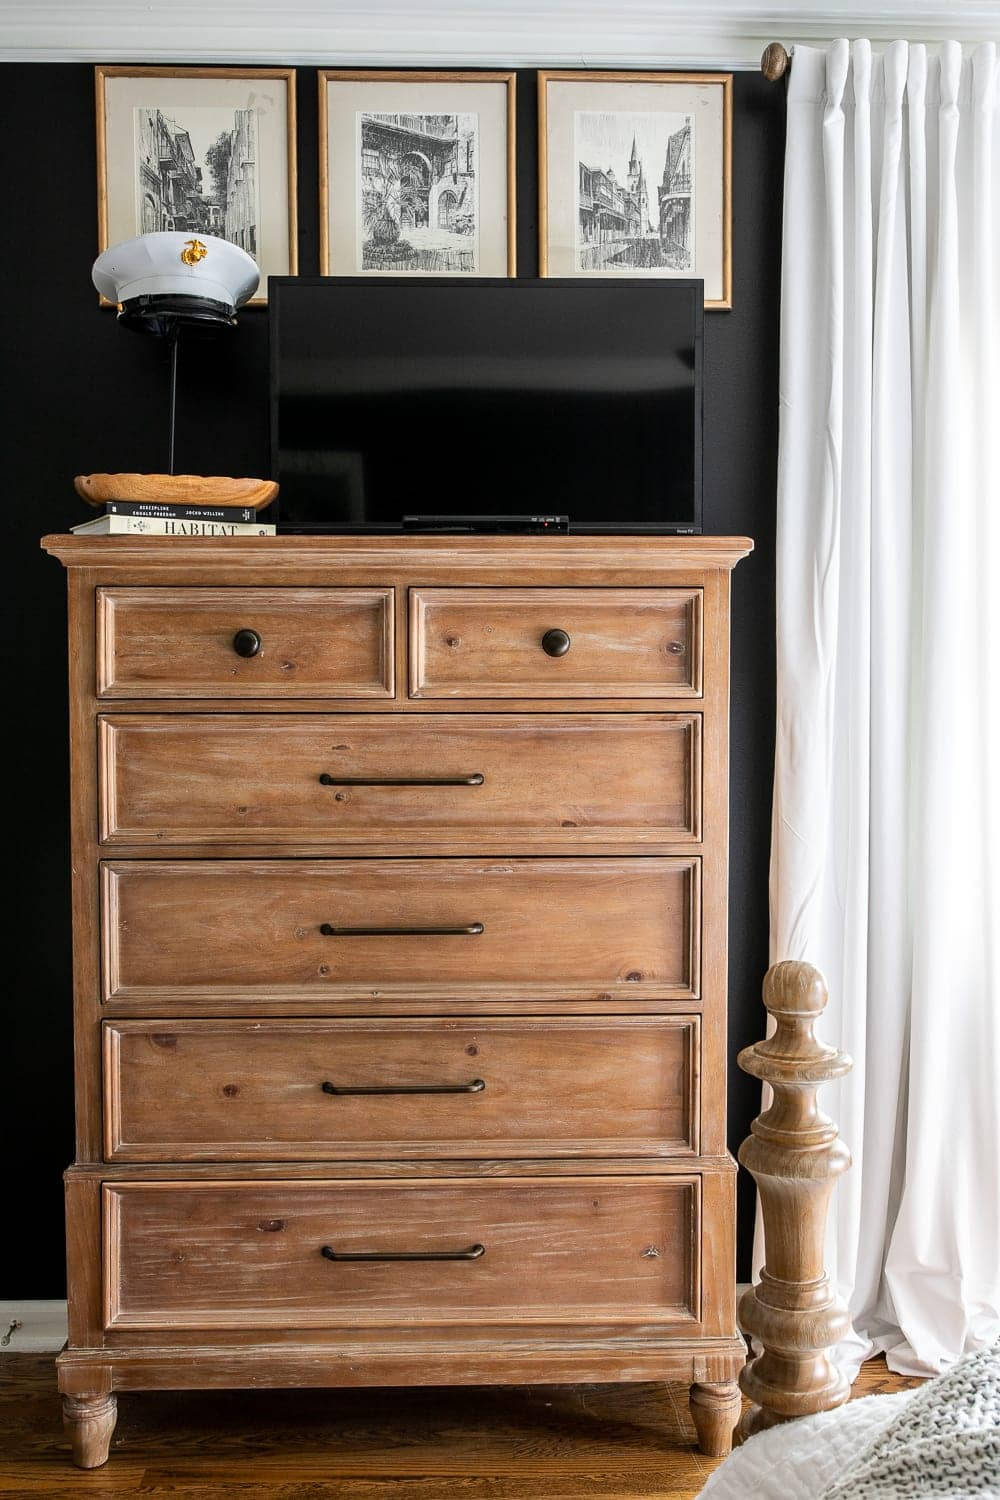 Bedroom TV disguised on dresser top with black paint